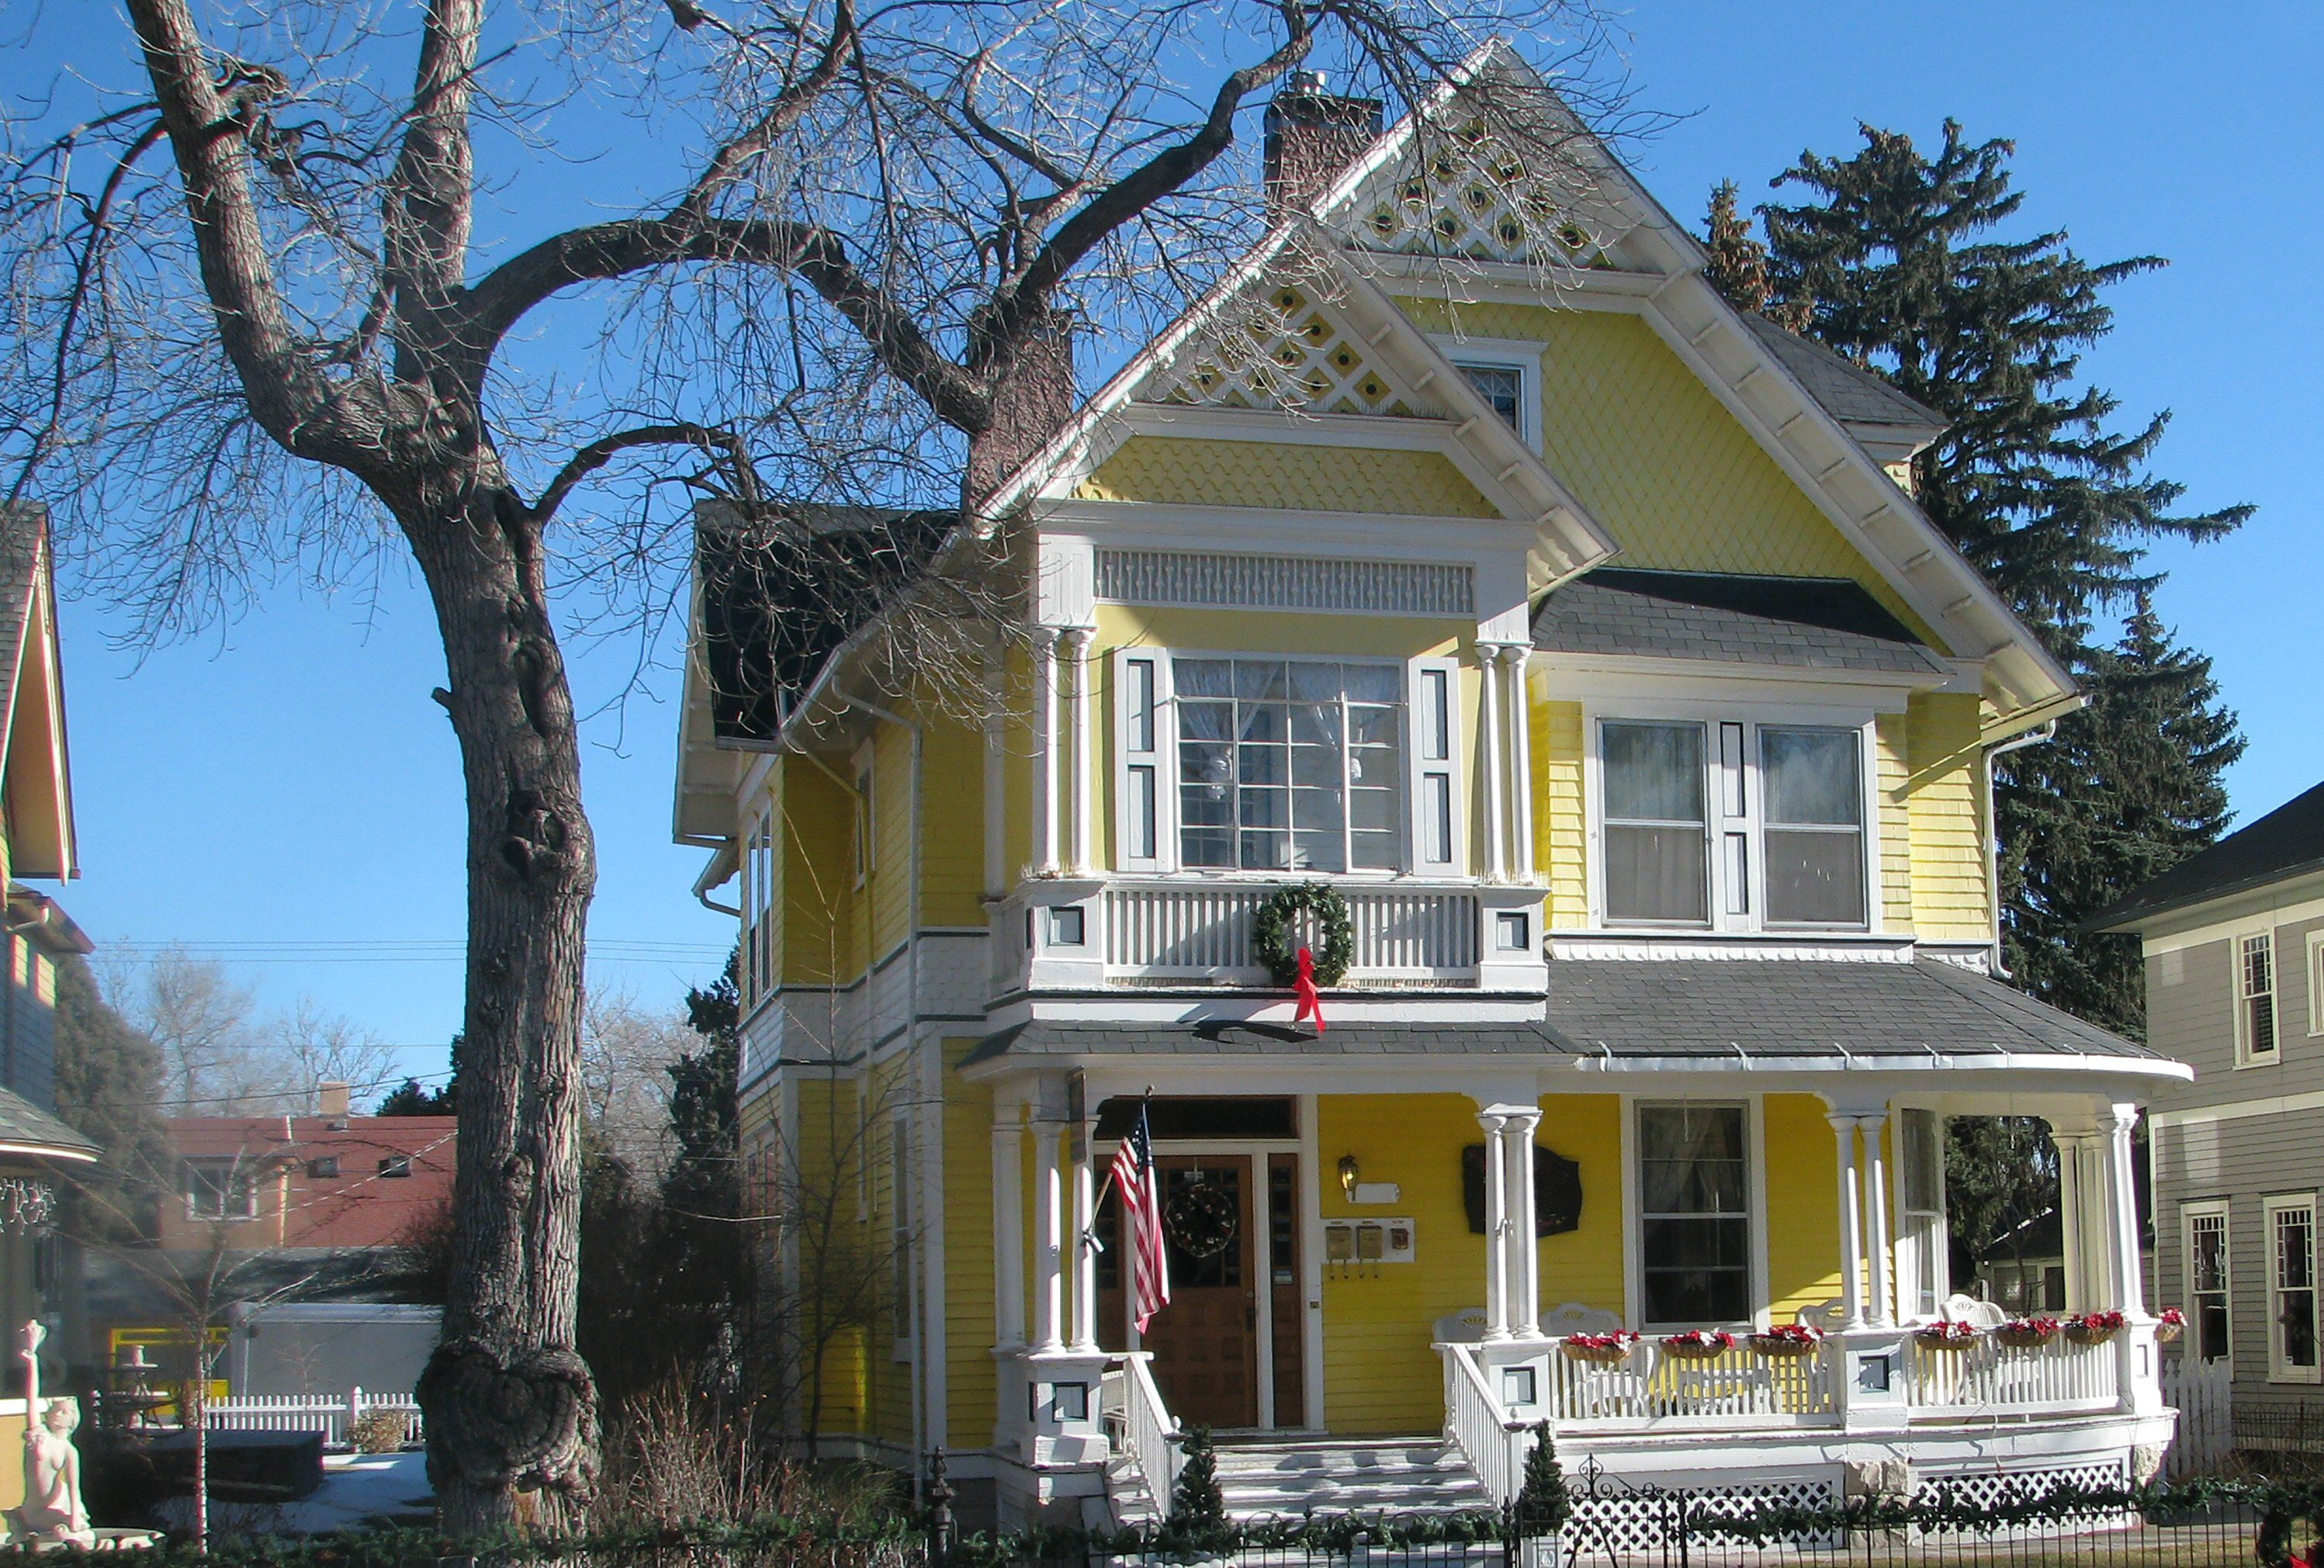 yellow house with white trim, two-story, front gable with attic window on third story, white lattice in peaks of gables, front porch on first floor and enclosed porch on second story, gable on side